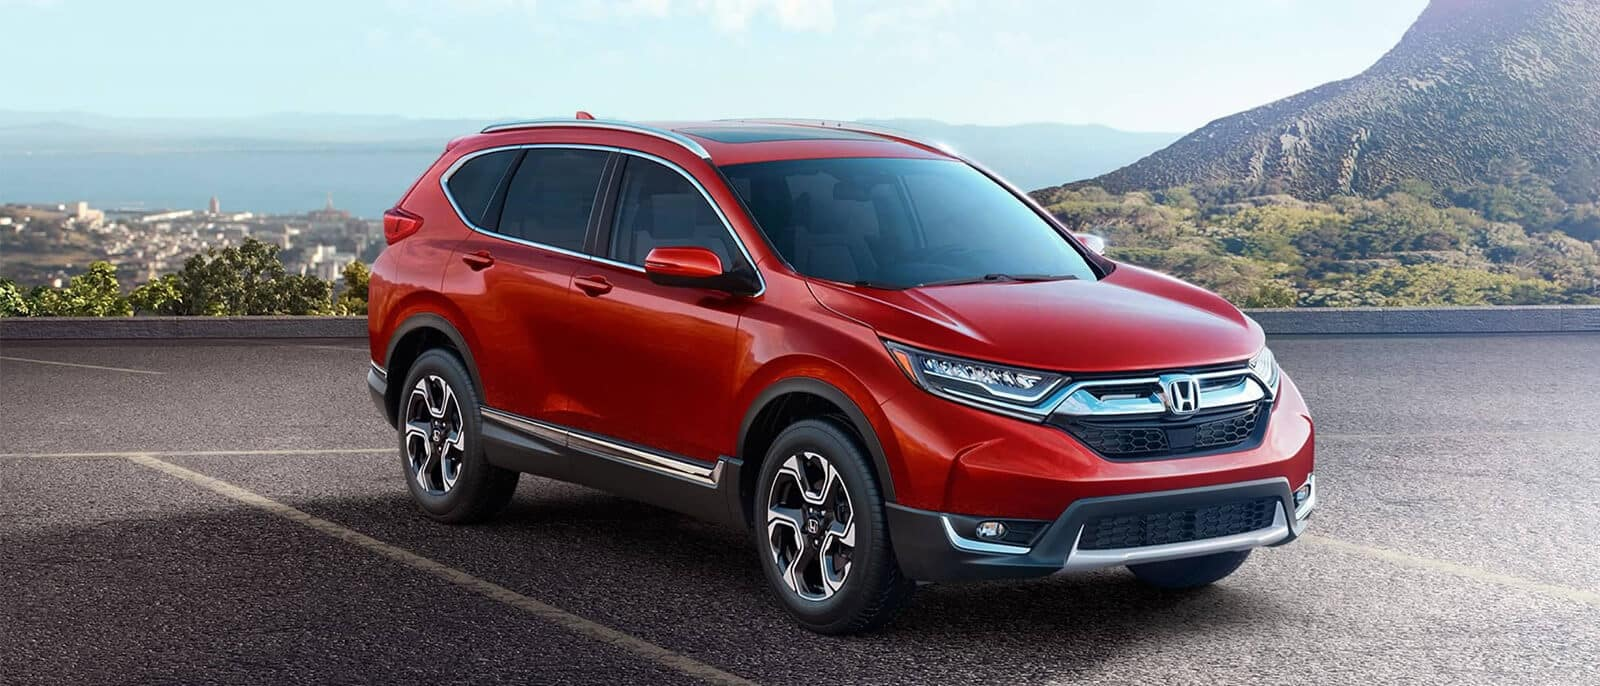 2018 Honda CR-V Mountain Background